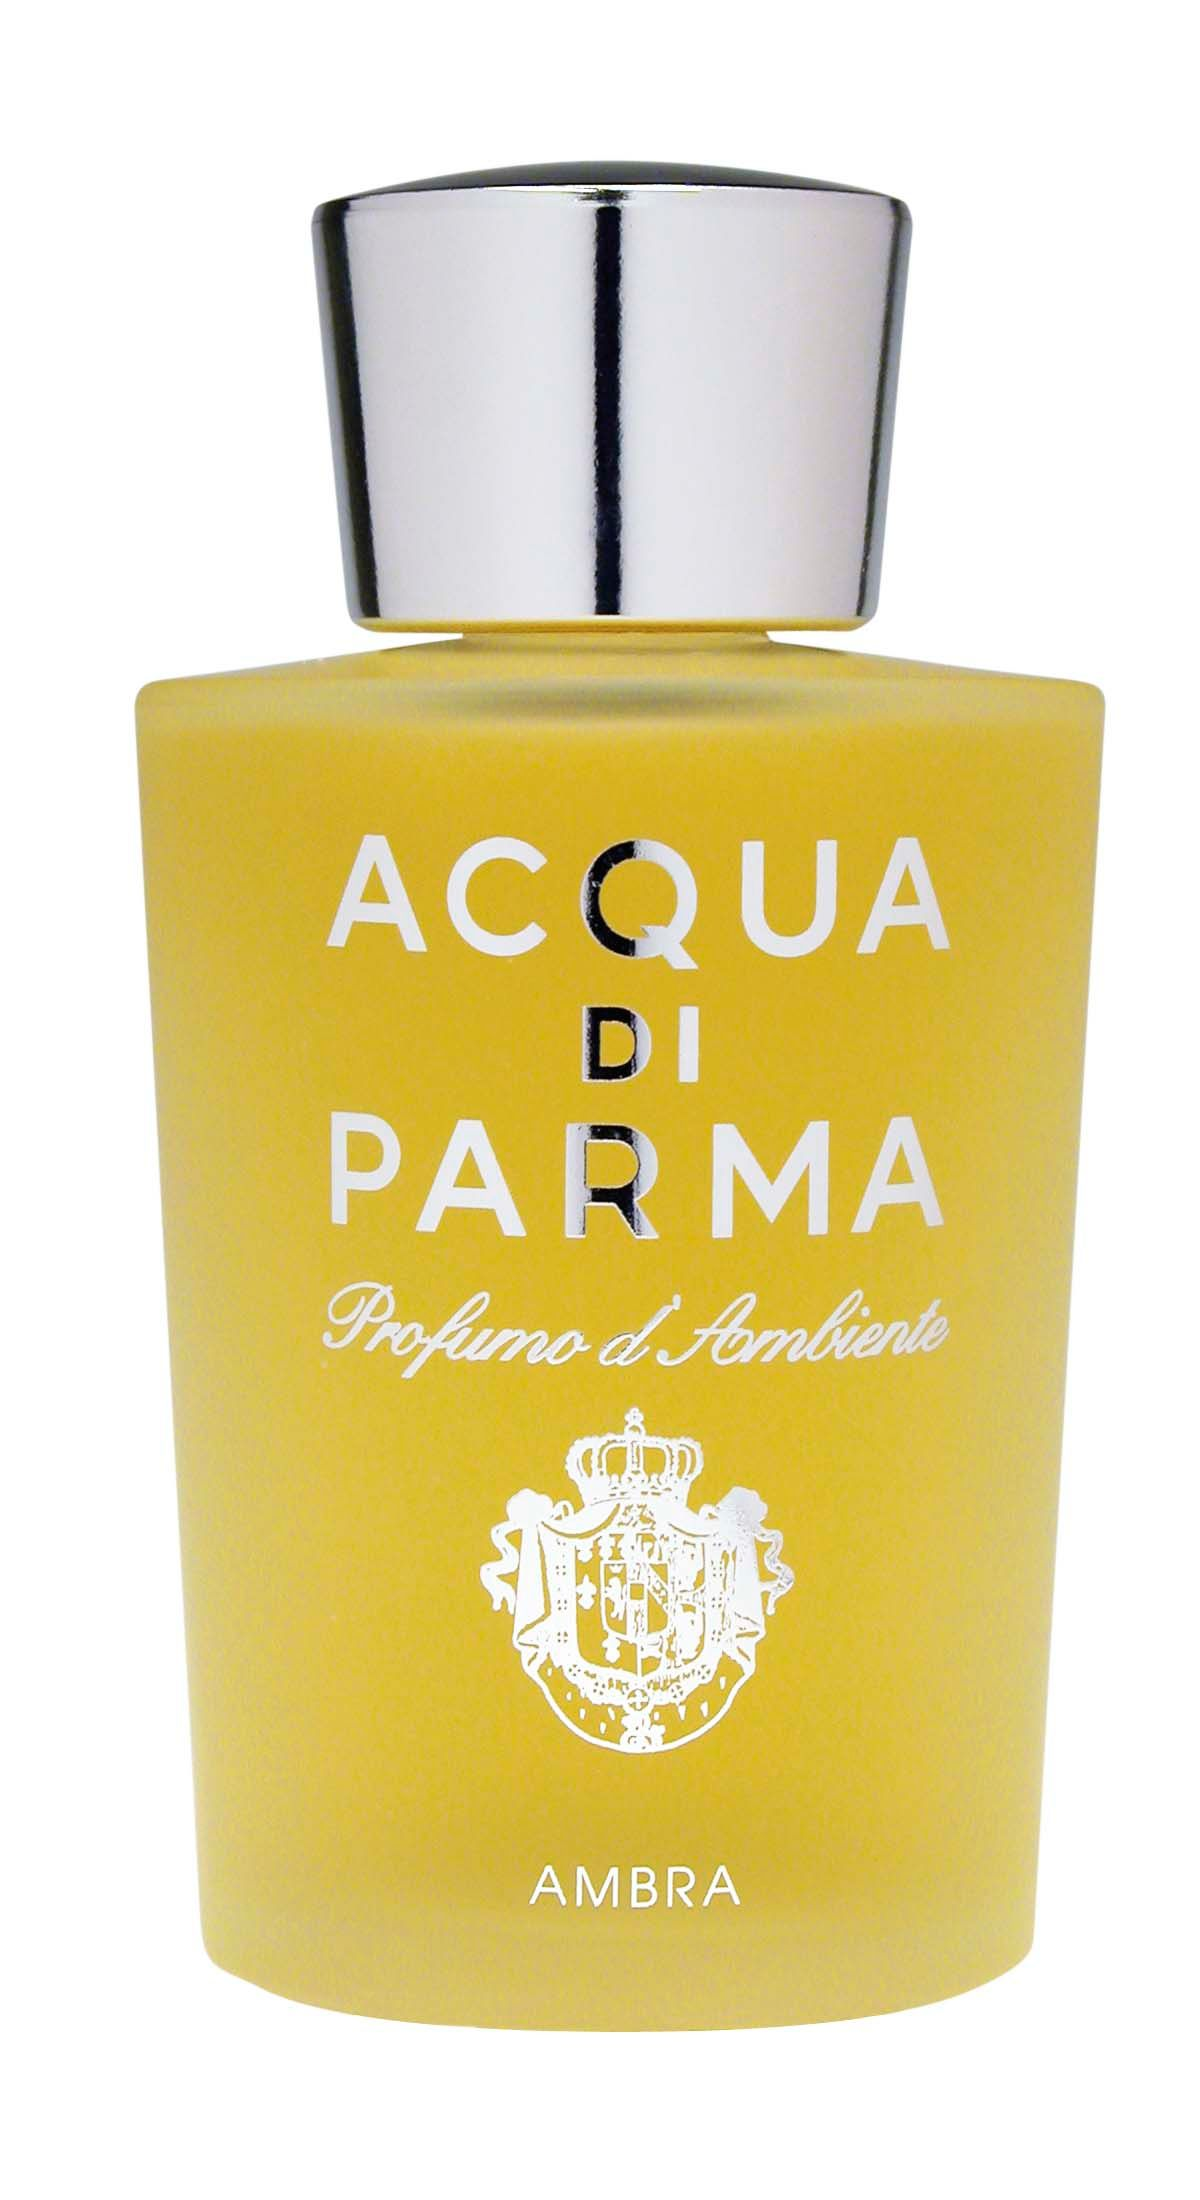 Image of Acqua Di Parma Amber Accord room spray